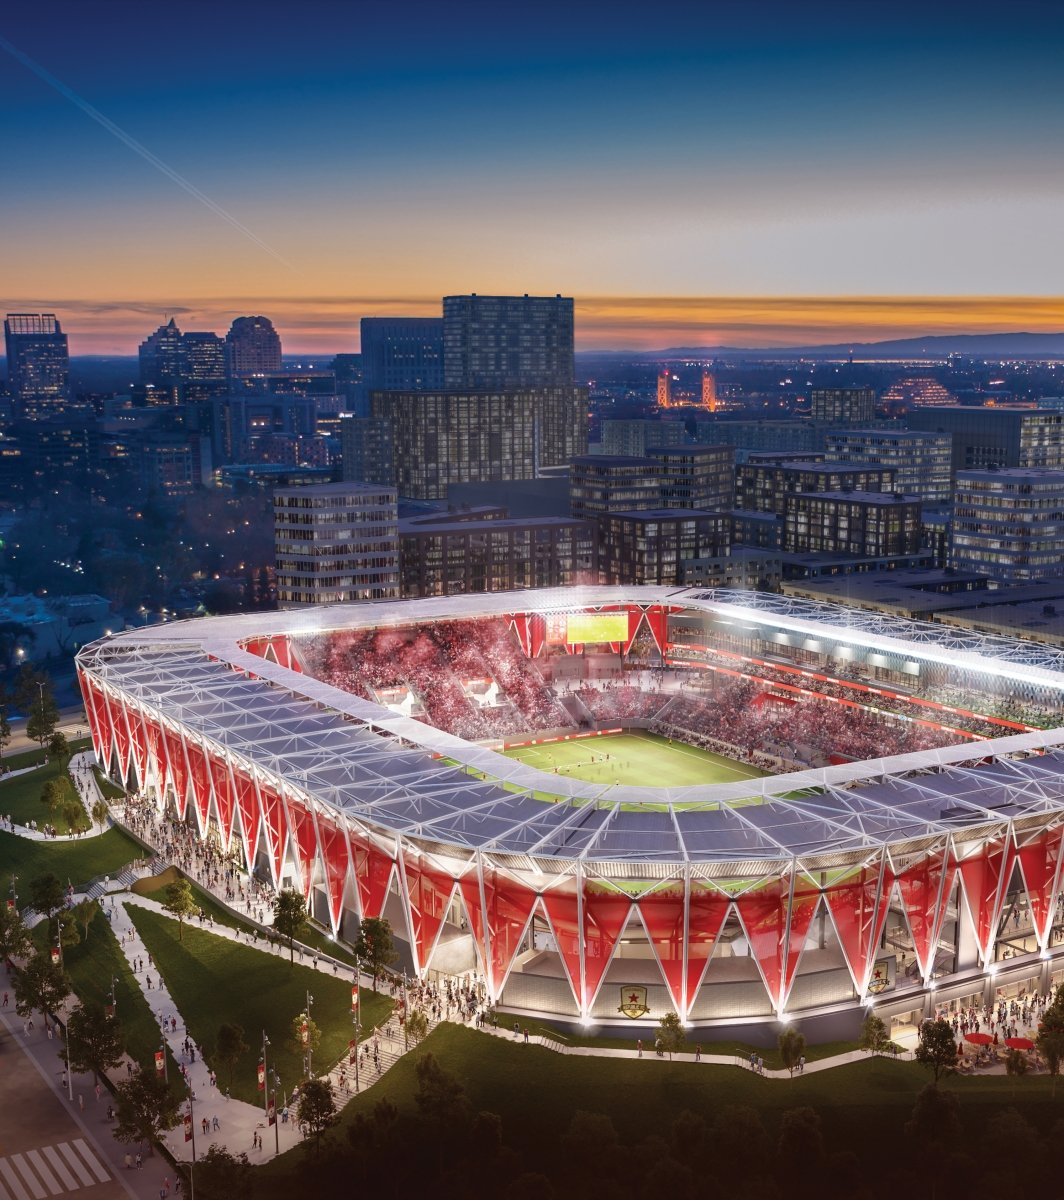 The soccer arena will boast an indoor-outdoor concourse that will provide visitors with both views of the field and the downtown skyline. (Rendering by HNTB)